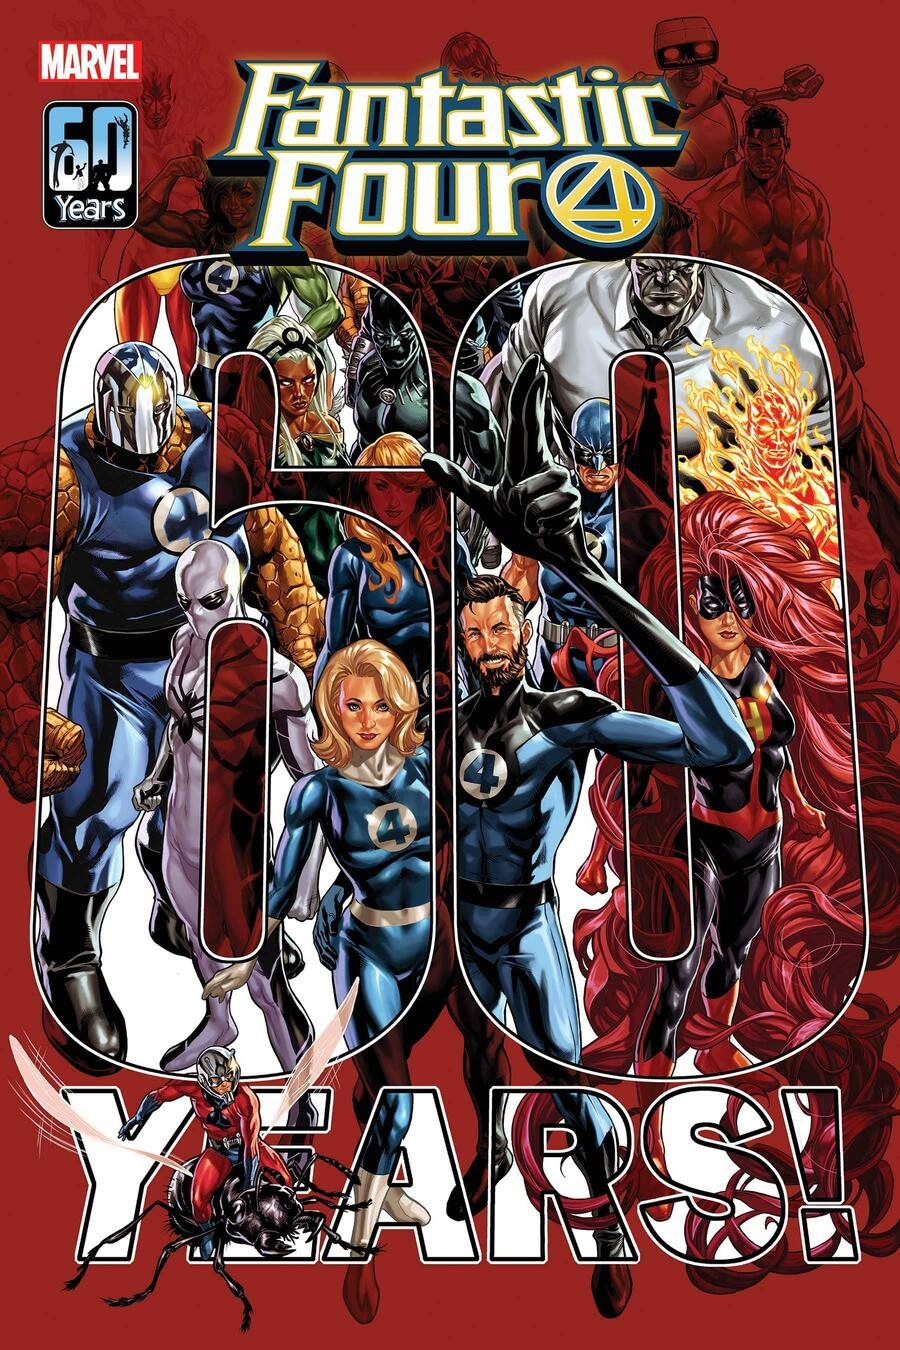 FANTASTIC FOUR #35 cover by Mark Brooks